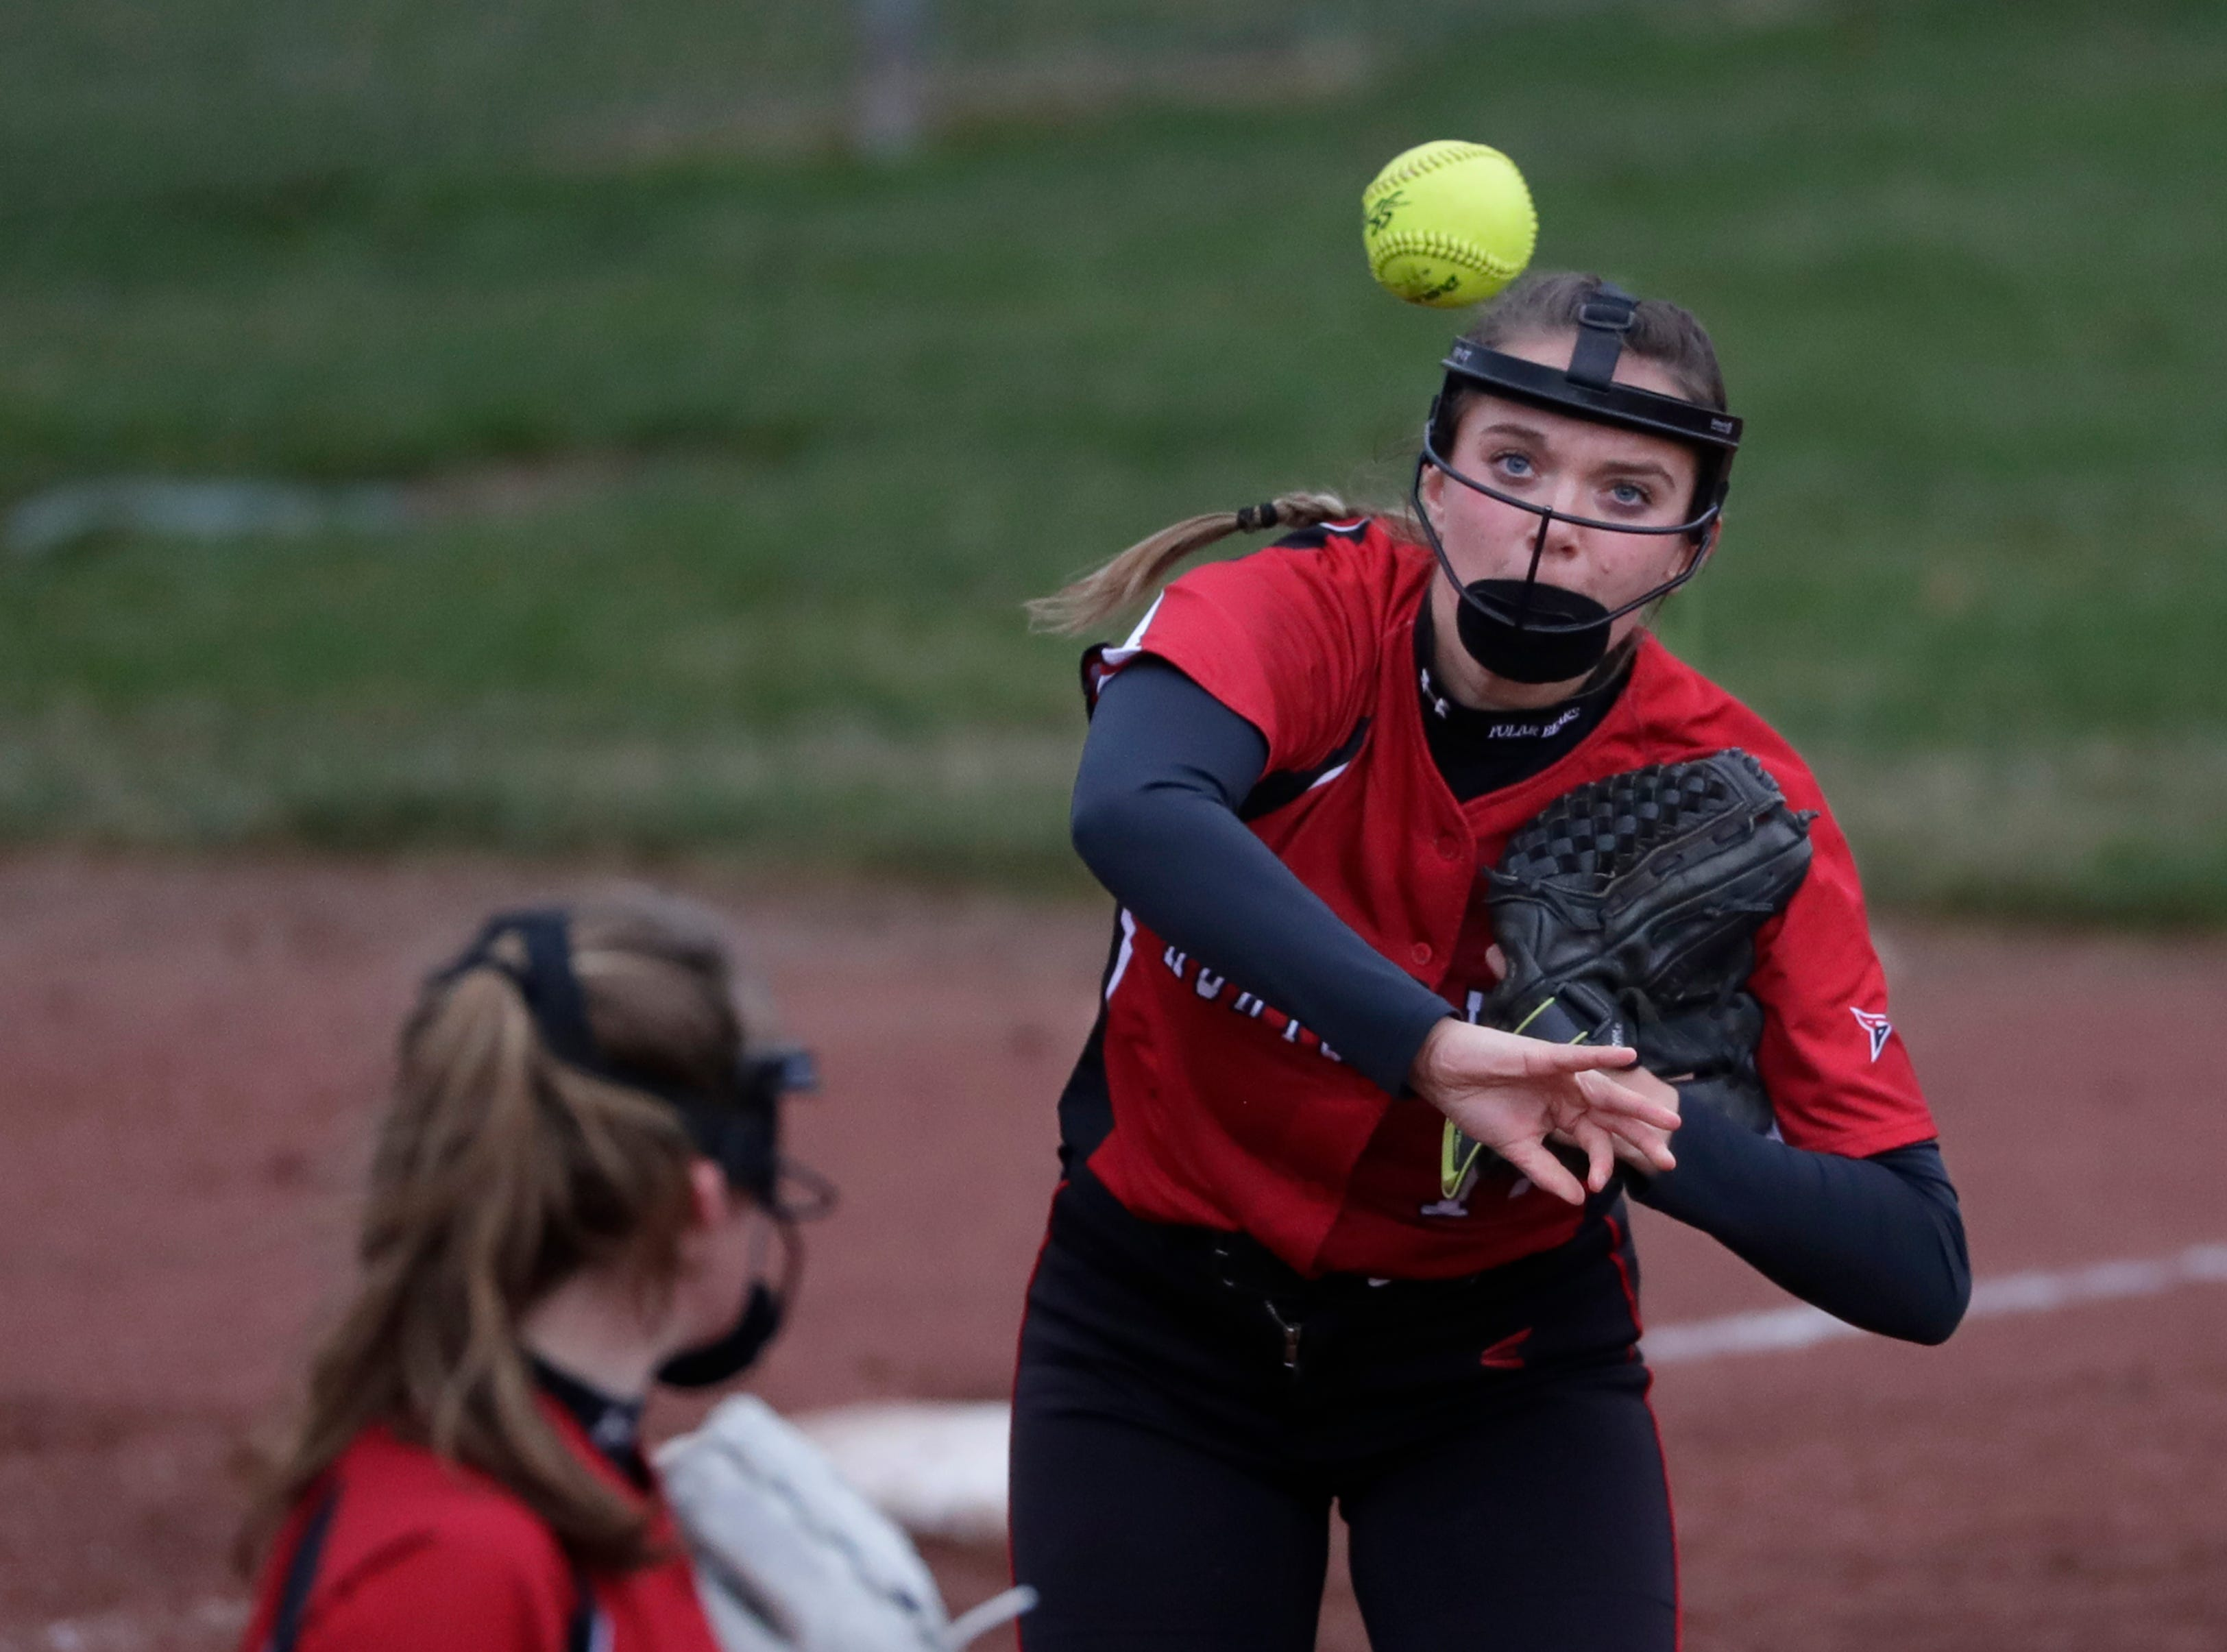 Hortonville High School's Hailey Wenzel (12) throws to first base against Appleton North High School during their girls softball game Monday, April 22, 2019, in Appleton, Wis. 